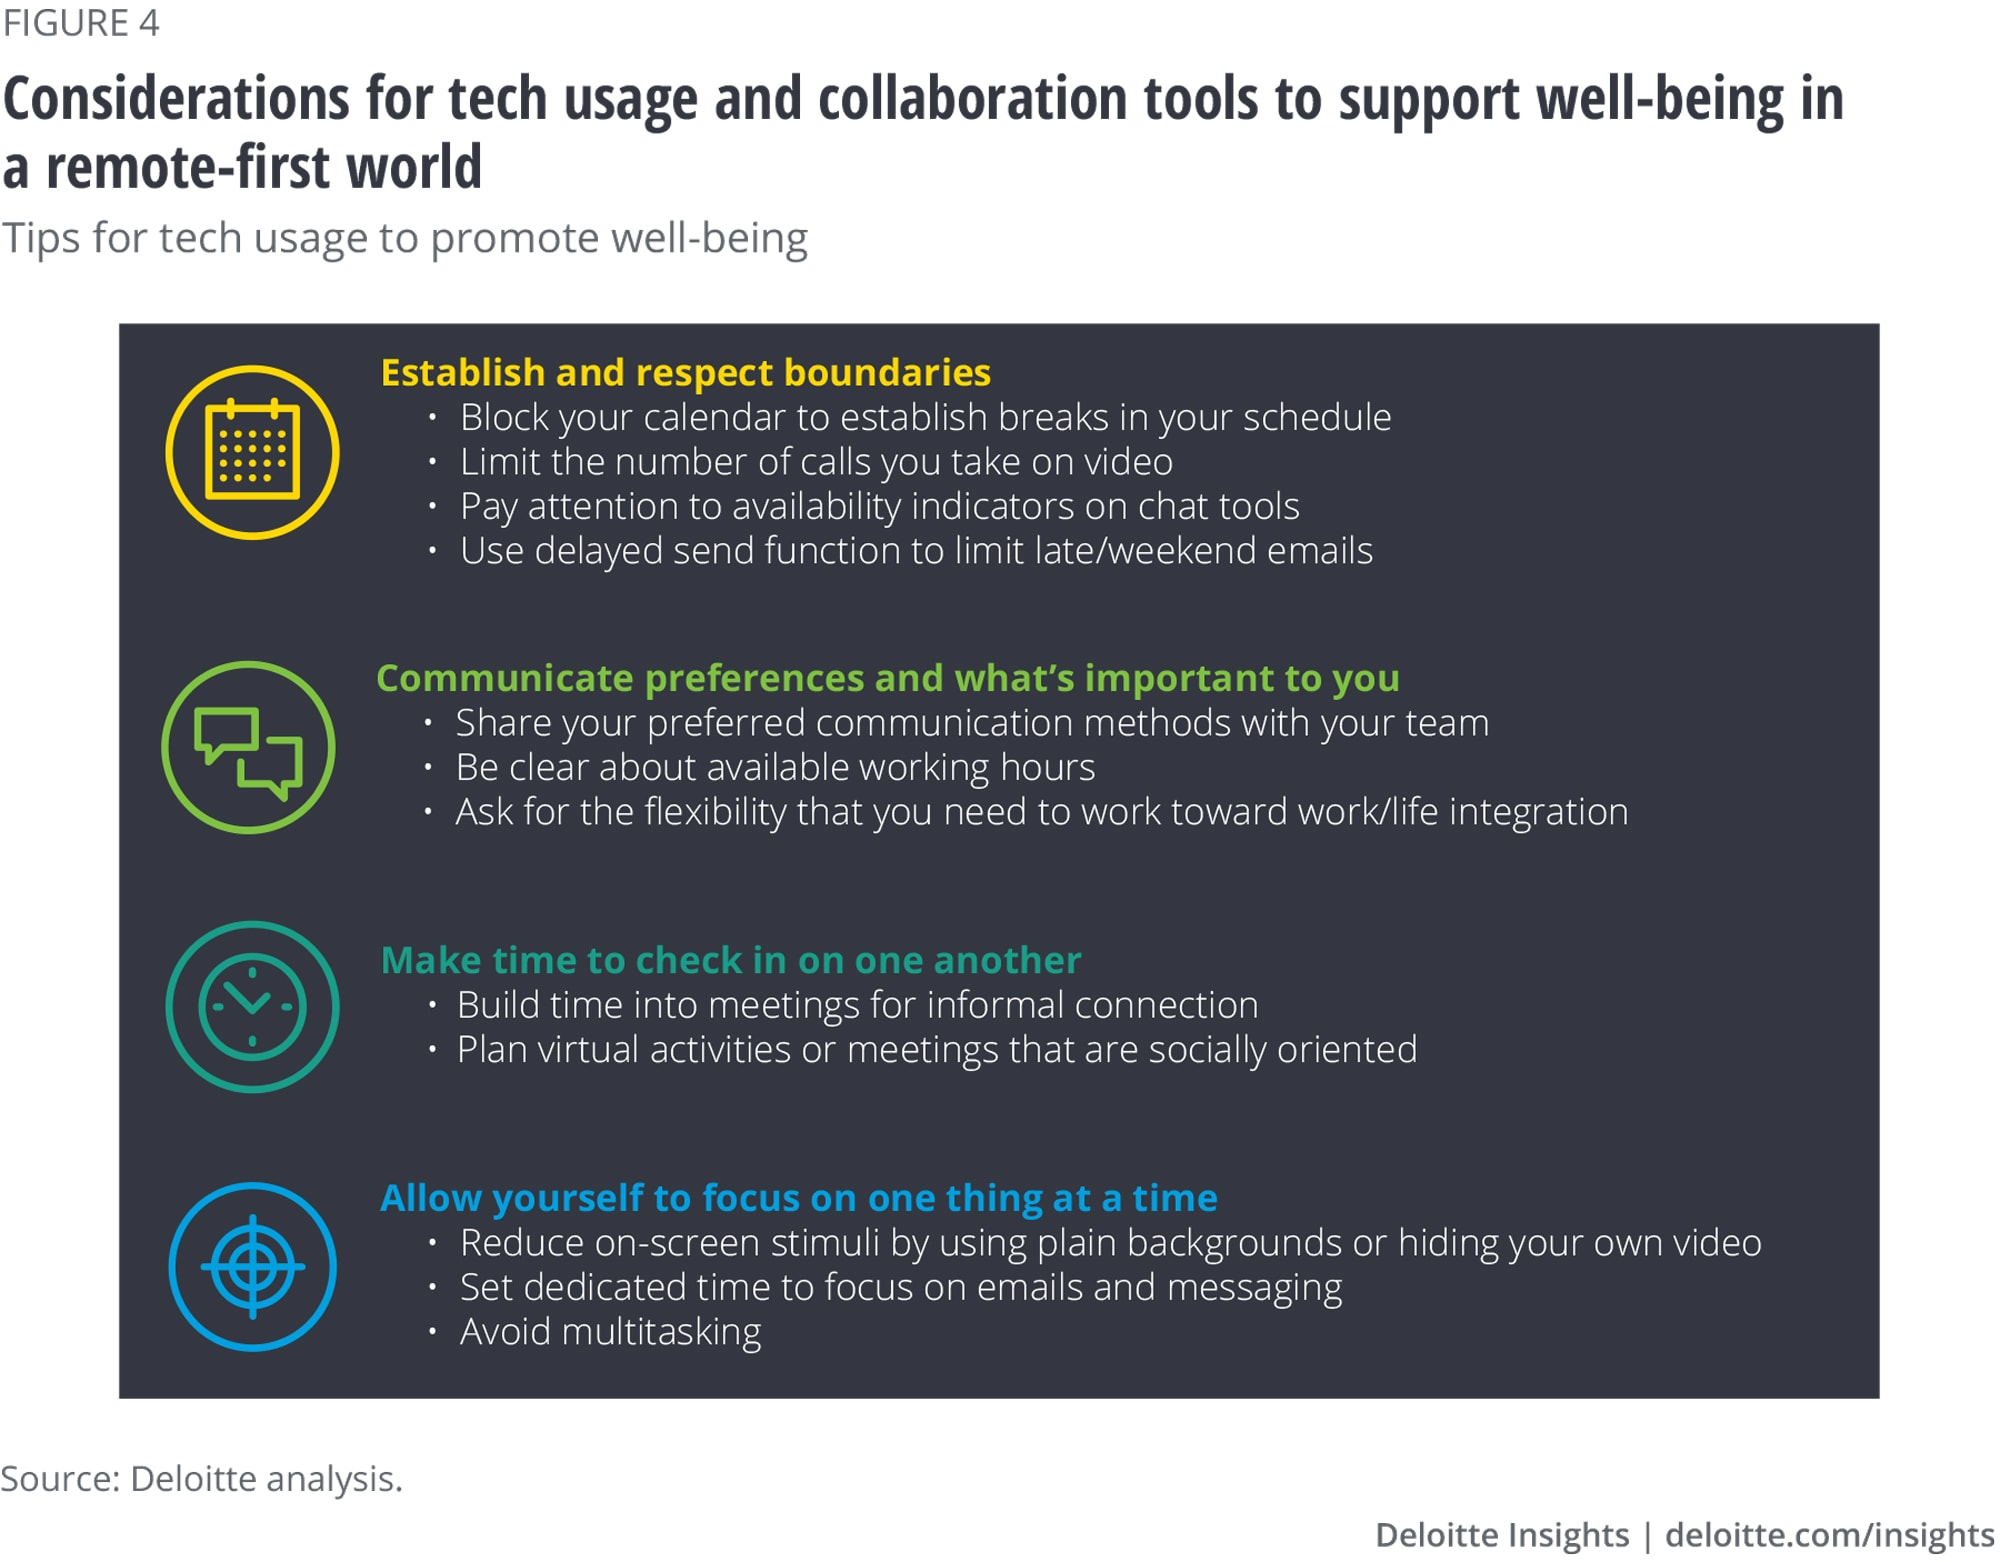 Considerations for tech usage and collaboration tools to support well-being in a remote-first world